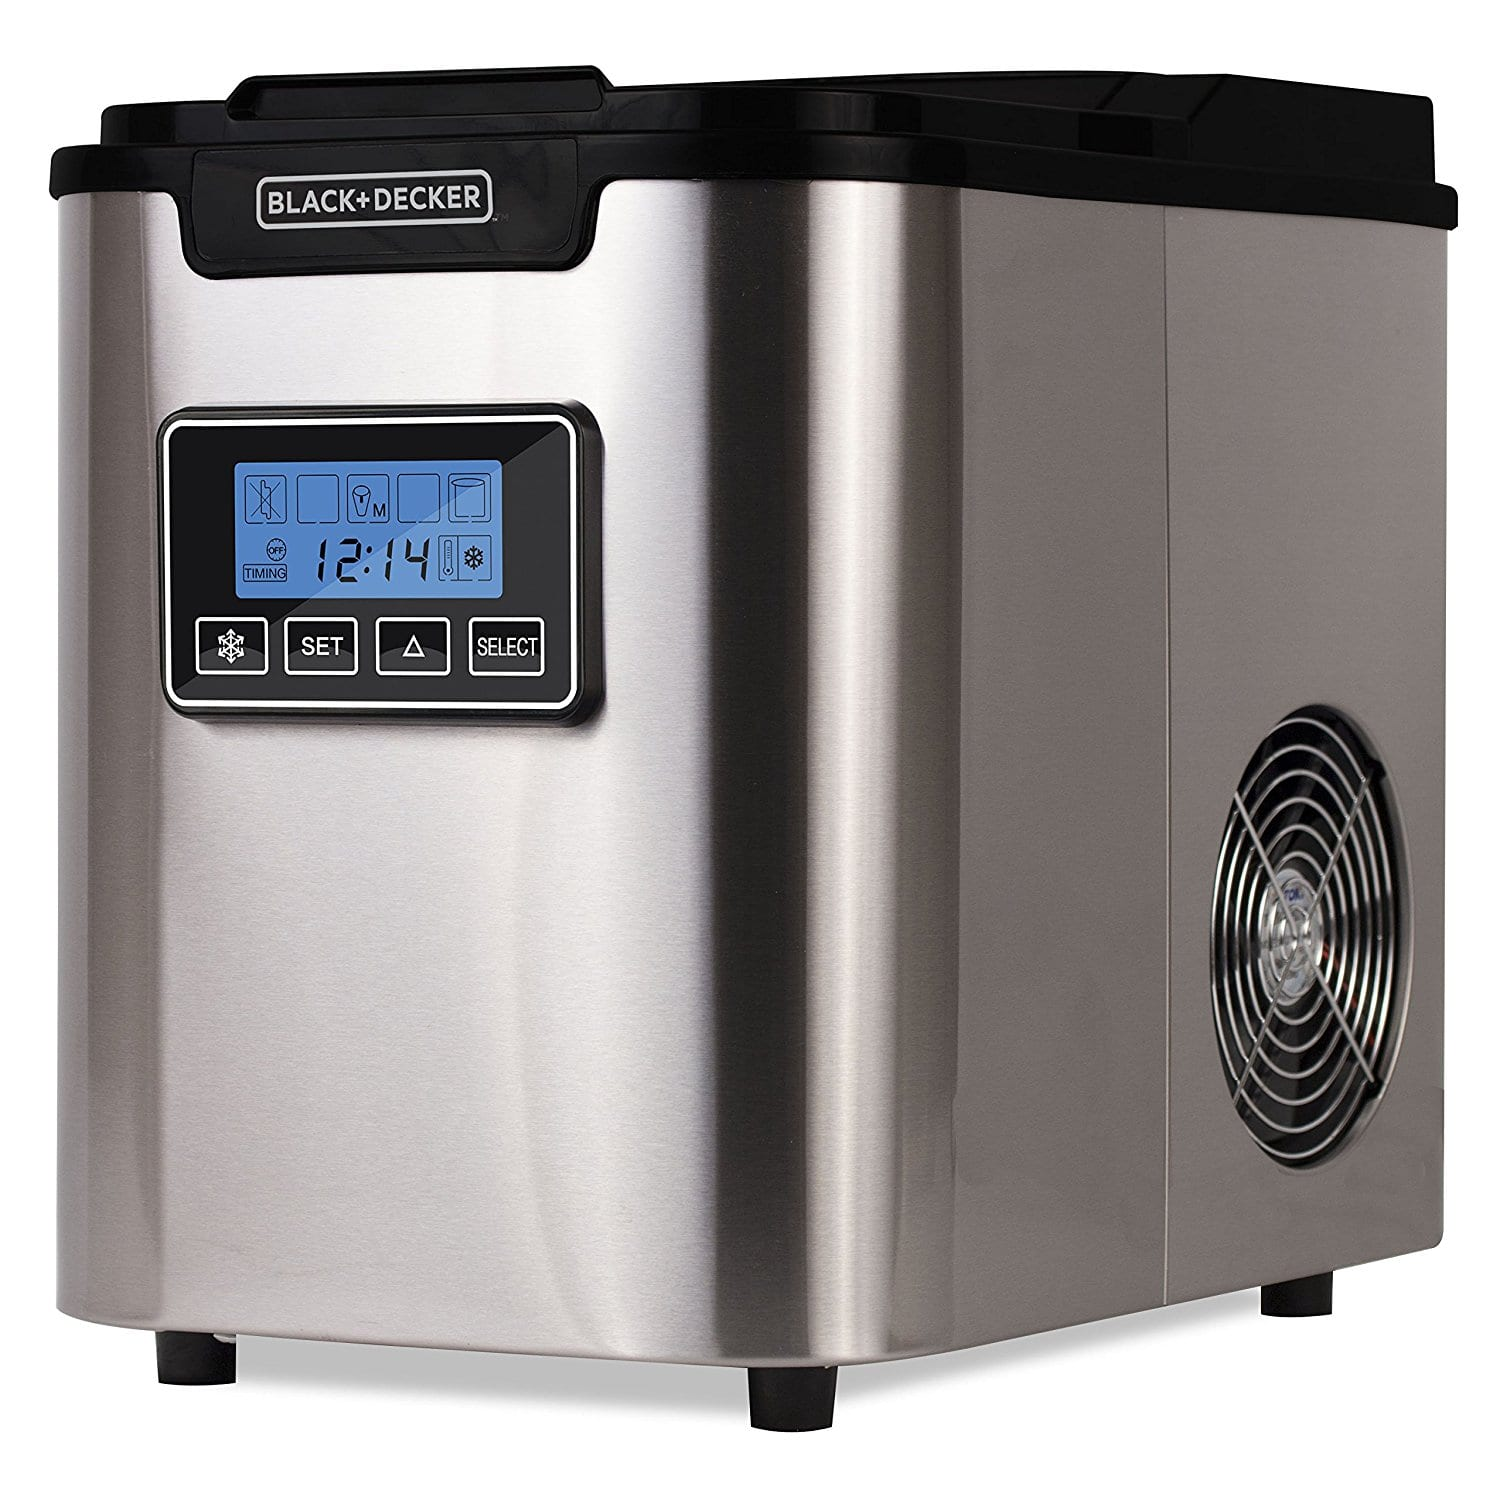 Top 8 Convenient & Portable Ice Maker Reviews in 2018